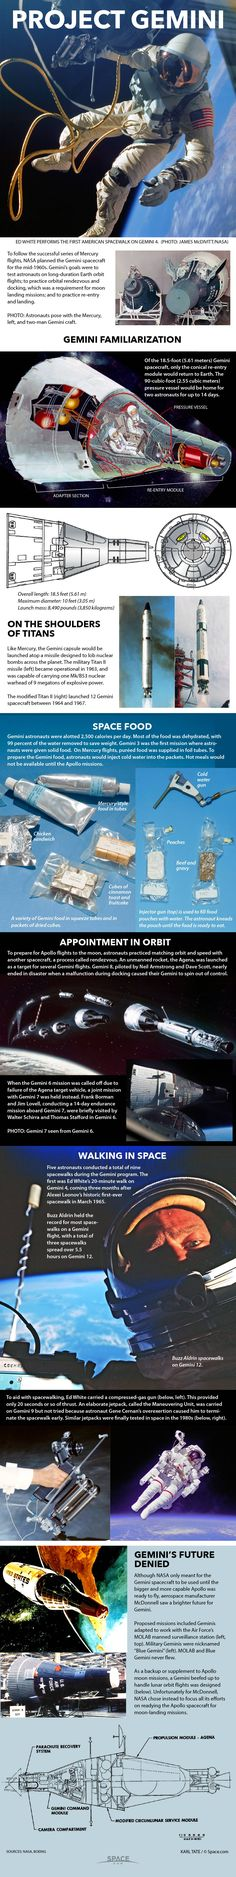 Paving the way for Apollo& missions to the moon, the Gemini program provided much-needed experience for astronauts in space. Moon Missions, Apollo Missions, Cosmos, Air Space, Deep Space, Project Gemini, Nasa History, Astronauts In Space, Space And Astronomy